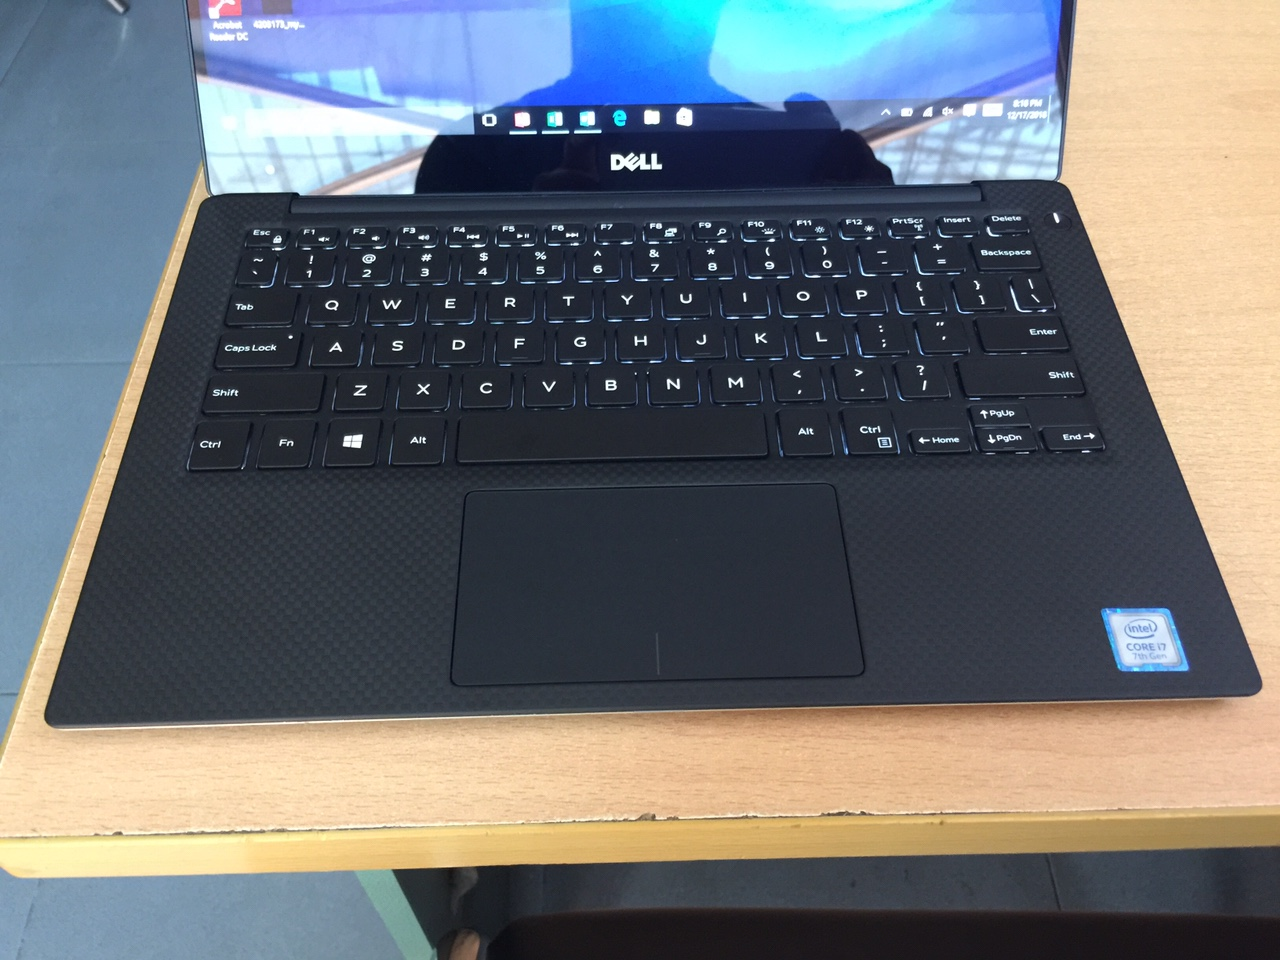 DELL XPS 13 9350 I7 6500U 8GB 256GB 13.3 3K TOUCH